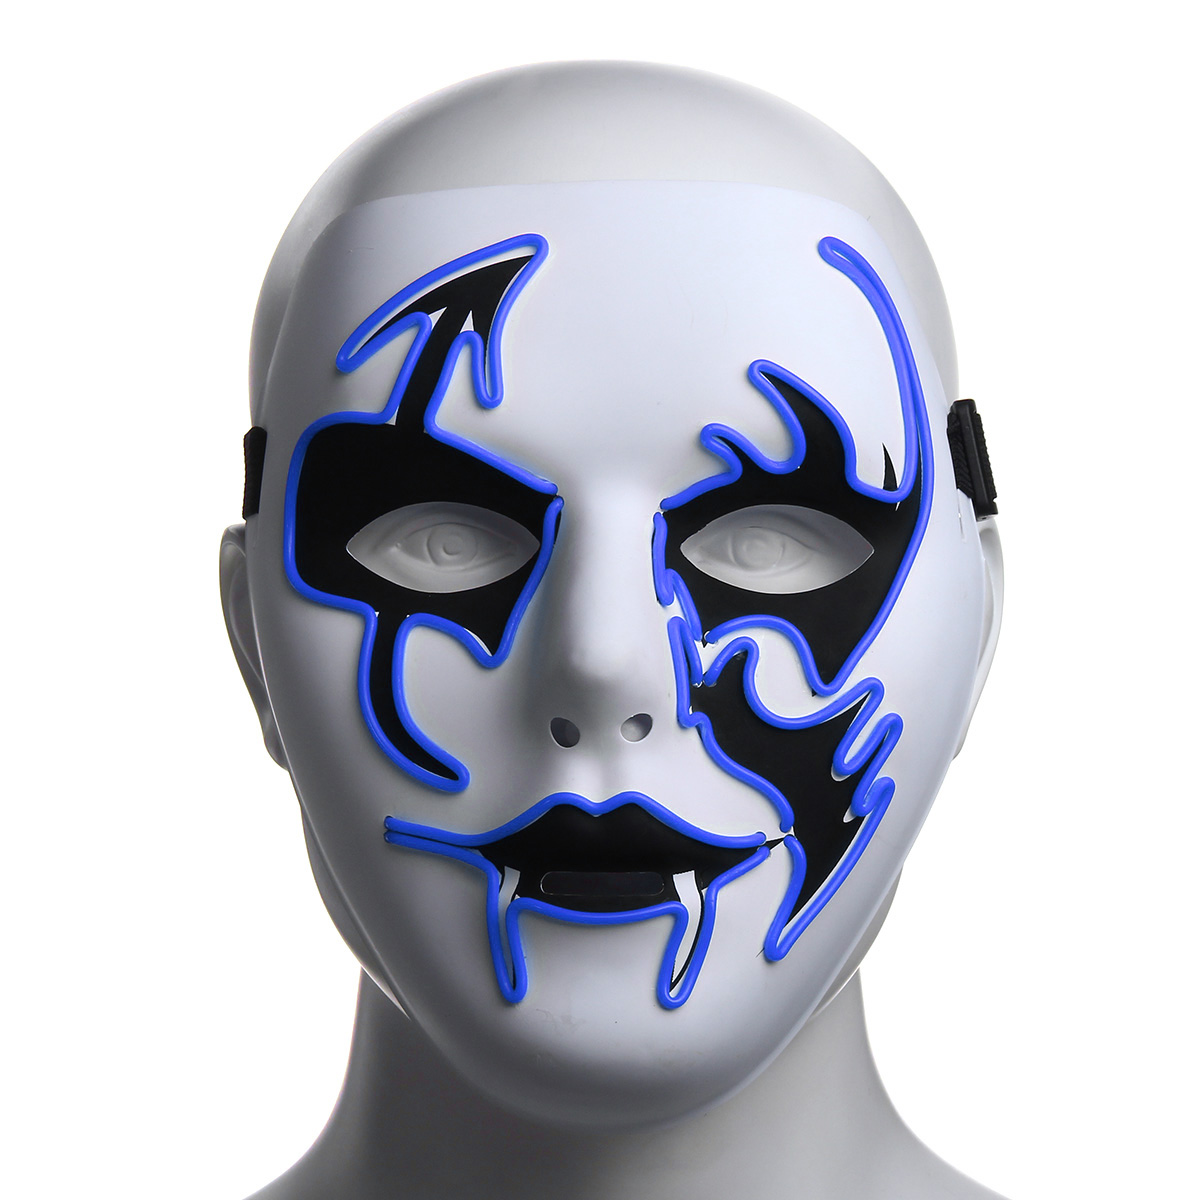 Luminous Flashing Face Mask Party LED Cosplay Halloween Cycling Dance Light Up